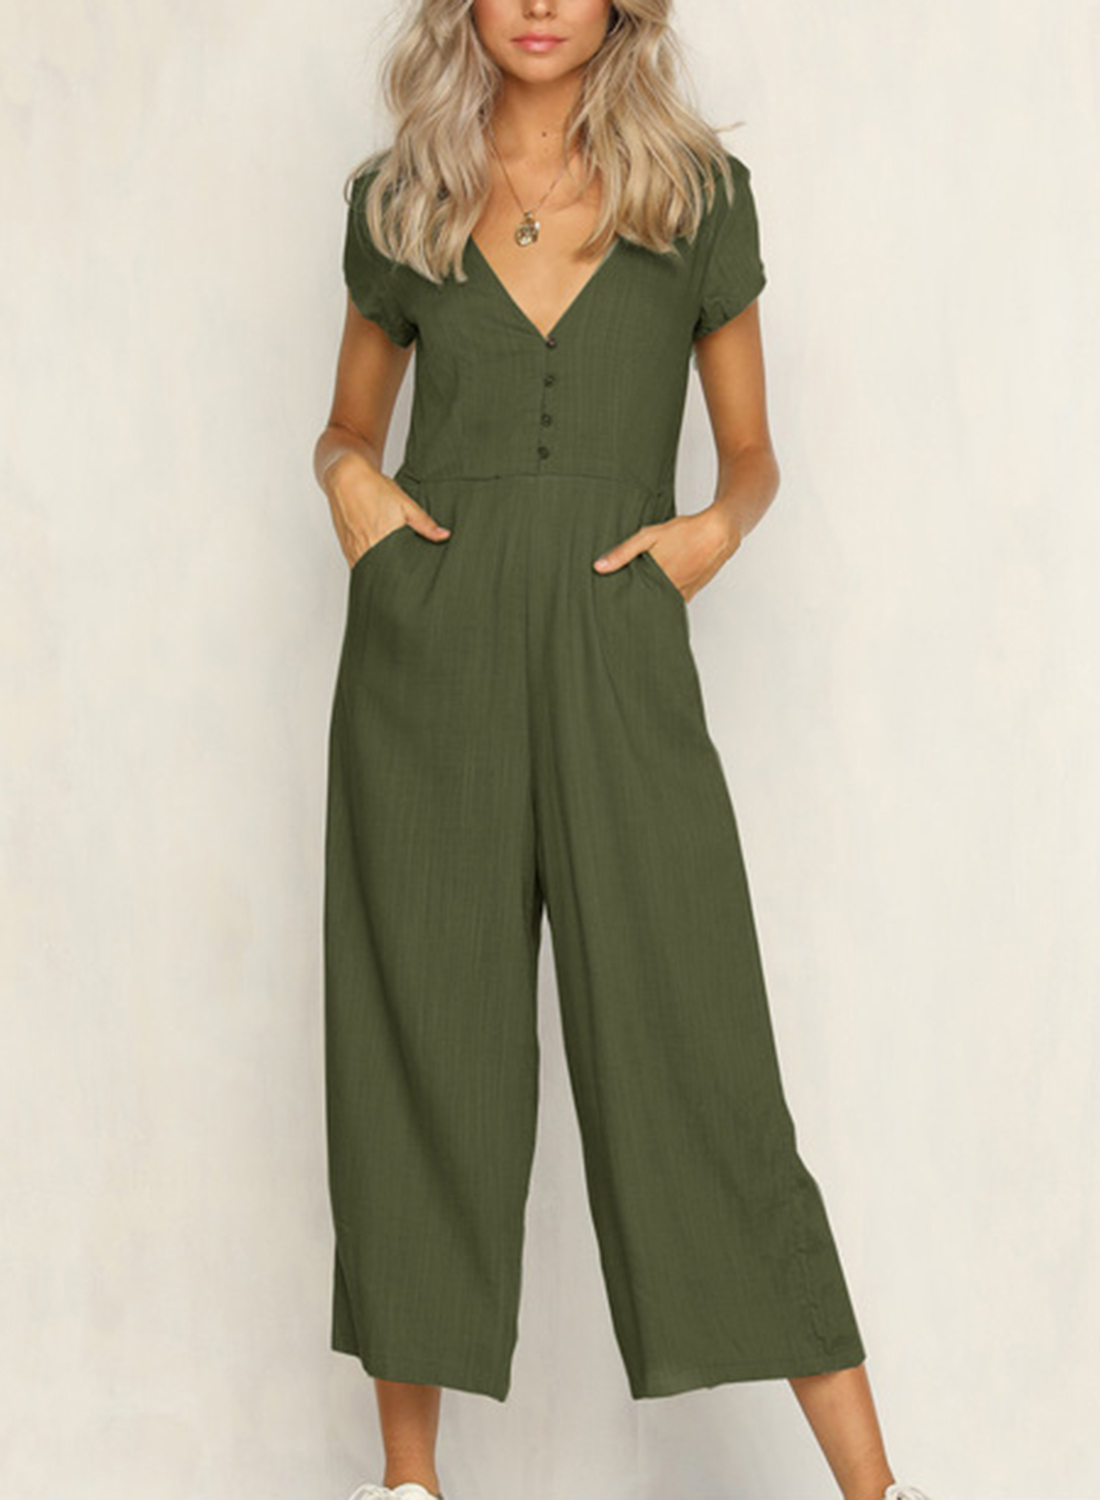 1428249dc5e Loading zoom. Casual Short Sleeve V Neck Front Buttons Wide Leg Jumpsuit  With Pockets  Casual ...